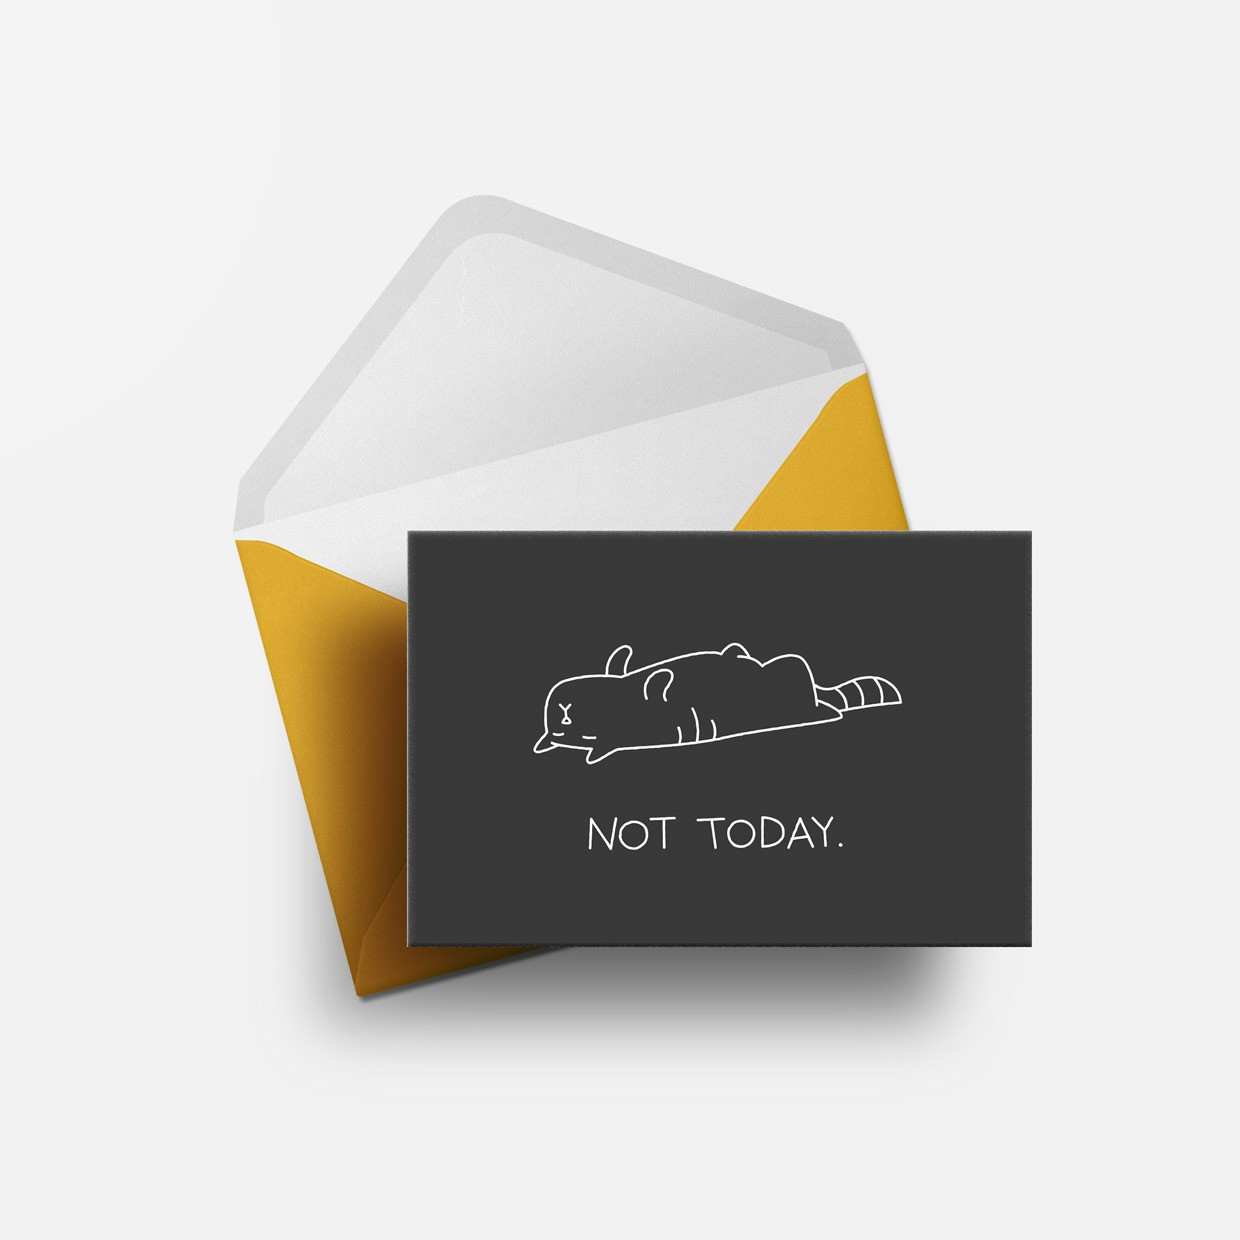 The NOT TODAY card